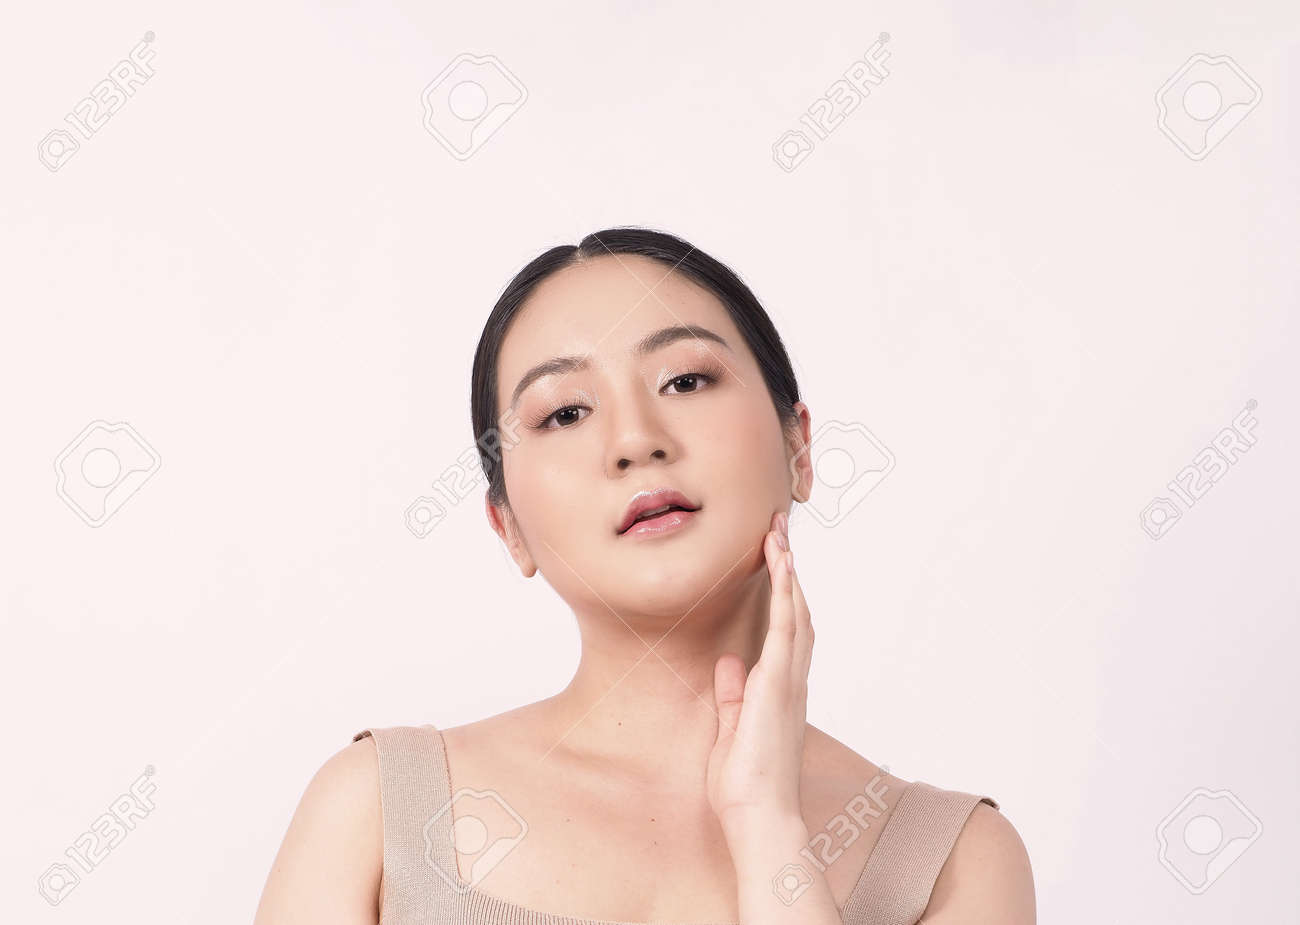 Beauty skin. makeup concept. Young pretty woman black hair and beauty face make up for skincare cosmetic. Showing delicate soft and firm and ageless facial skin. Oil type skin. Close up facial. beauty shot. - 168771741